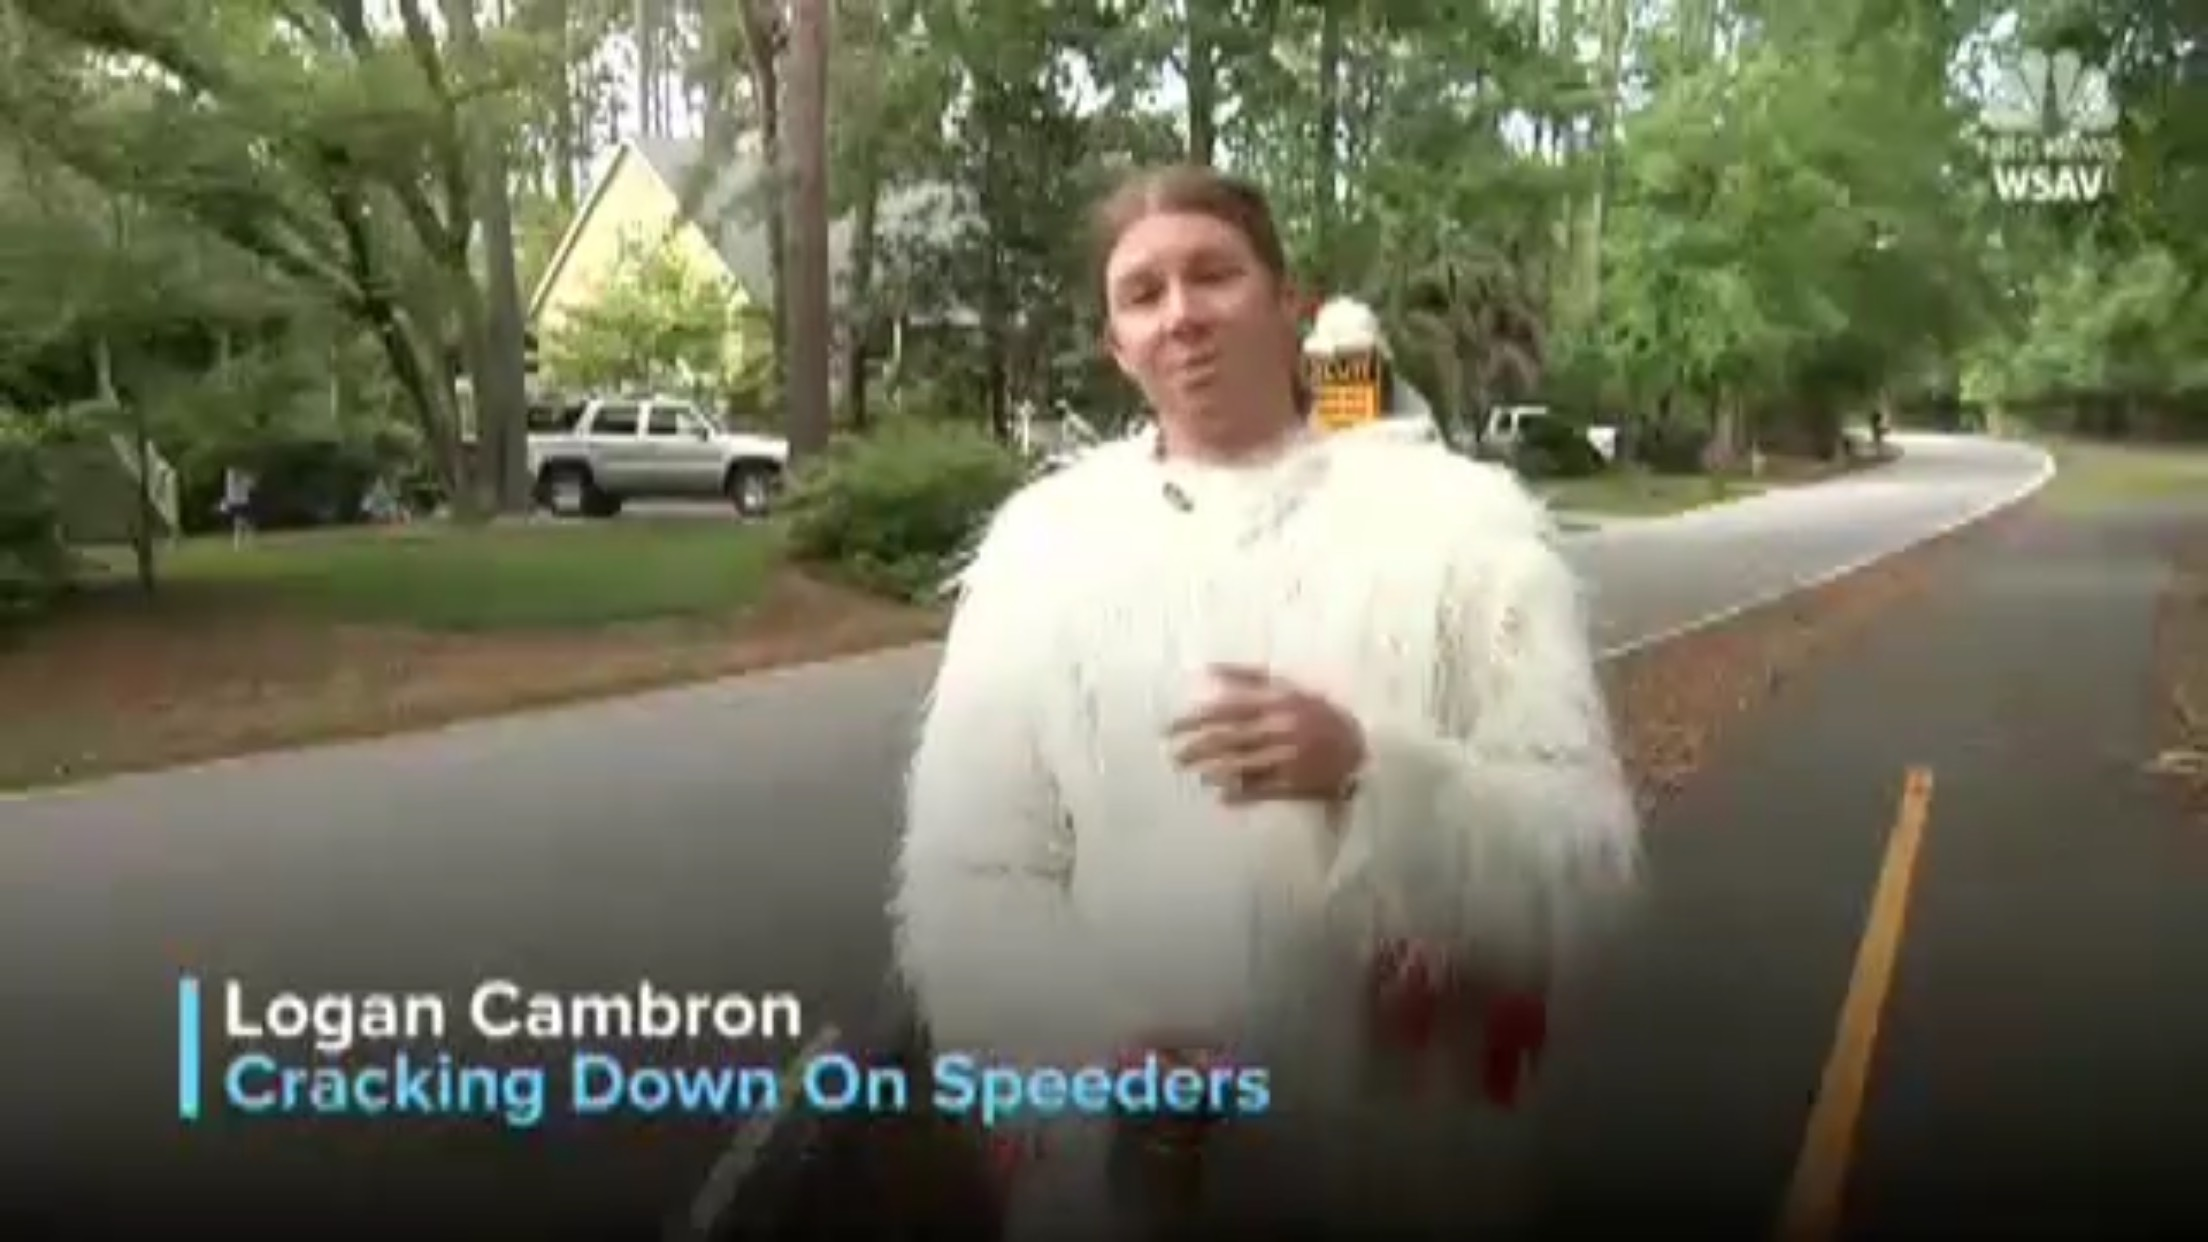 Logan Cambron: Cracking Down On Speeders